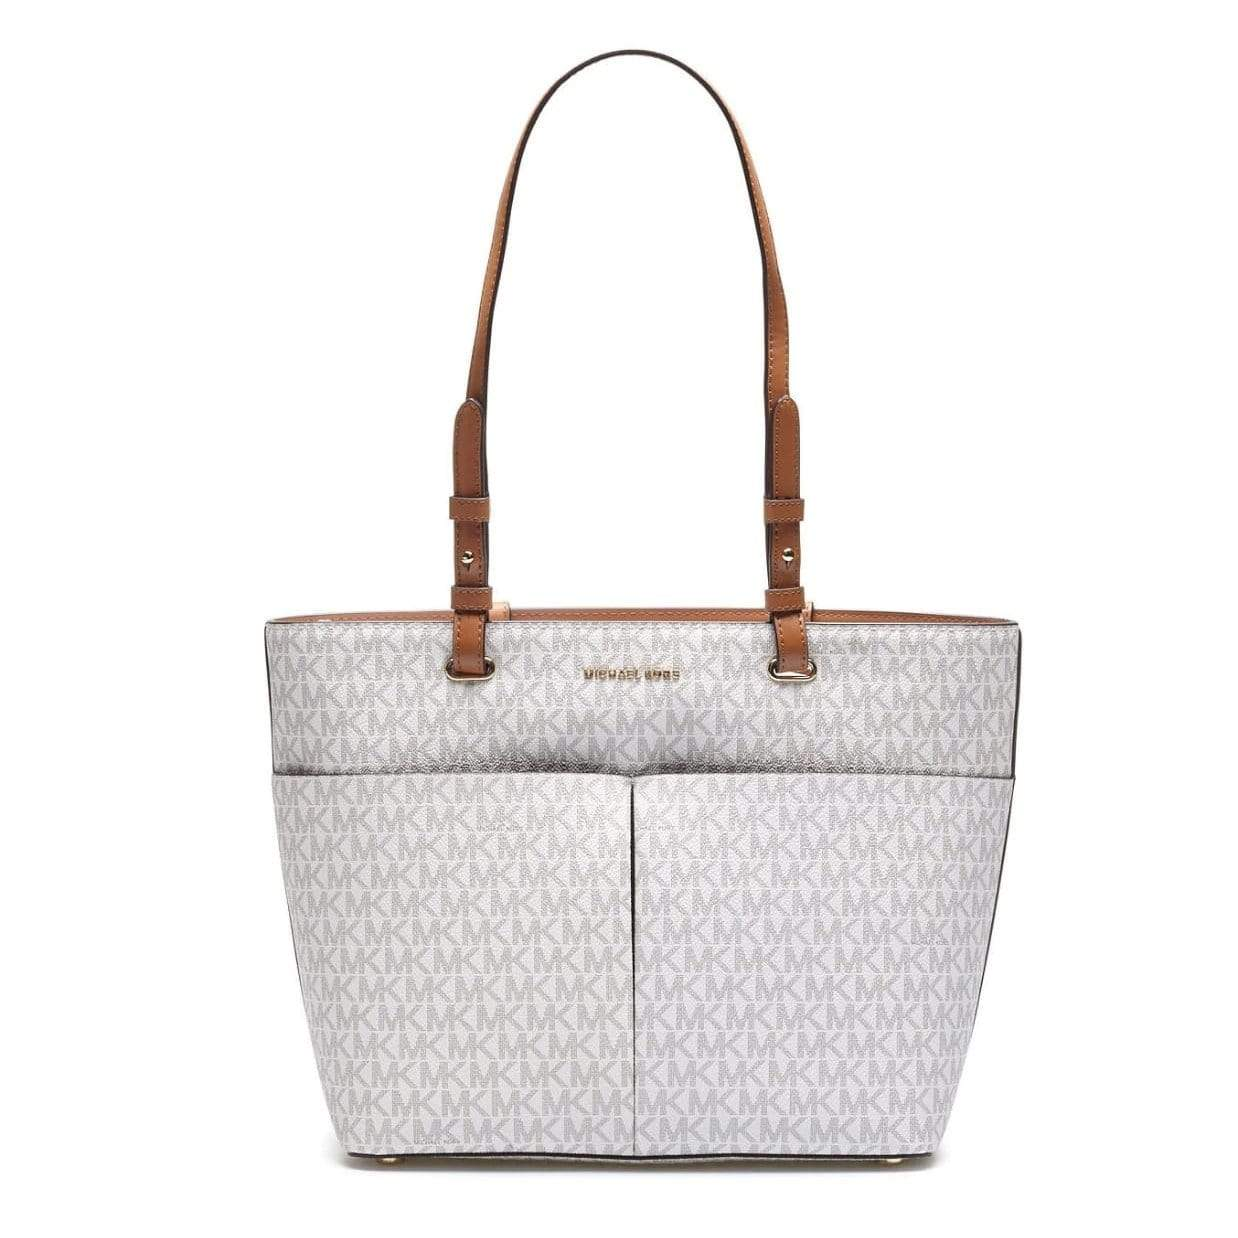 Michael Kors Bedford White Tote Bag First Copy